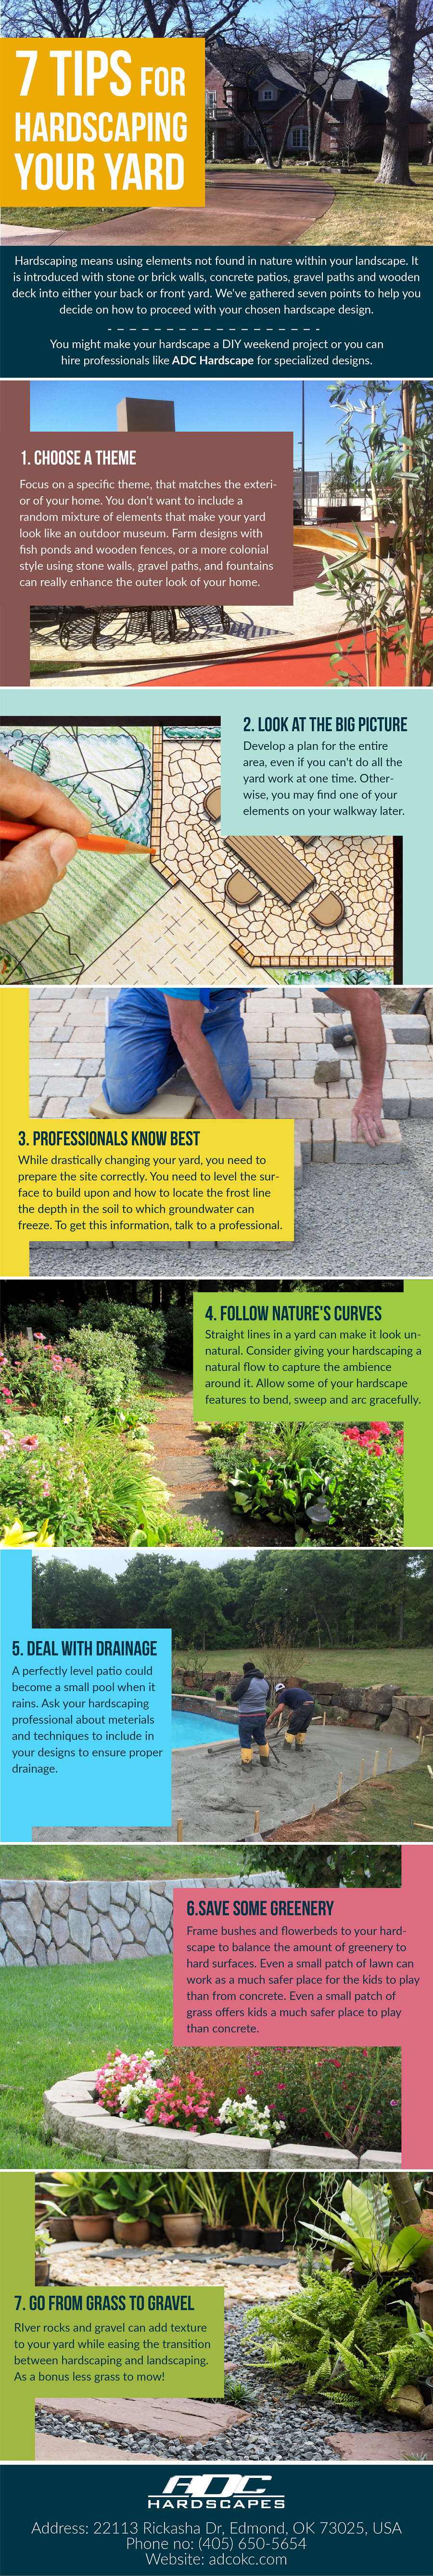 7 Tips For Hardscaping Your Yard.png